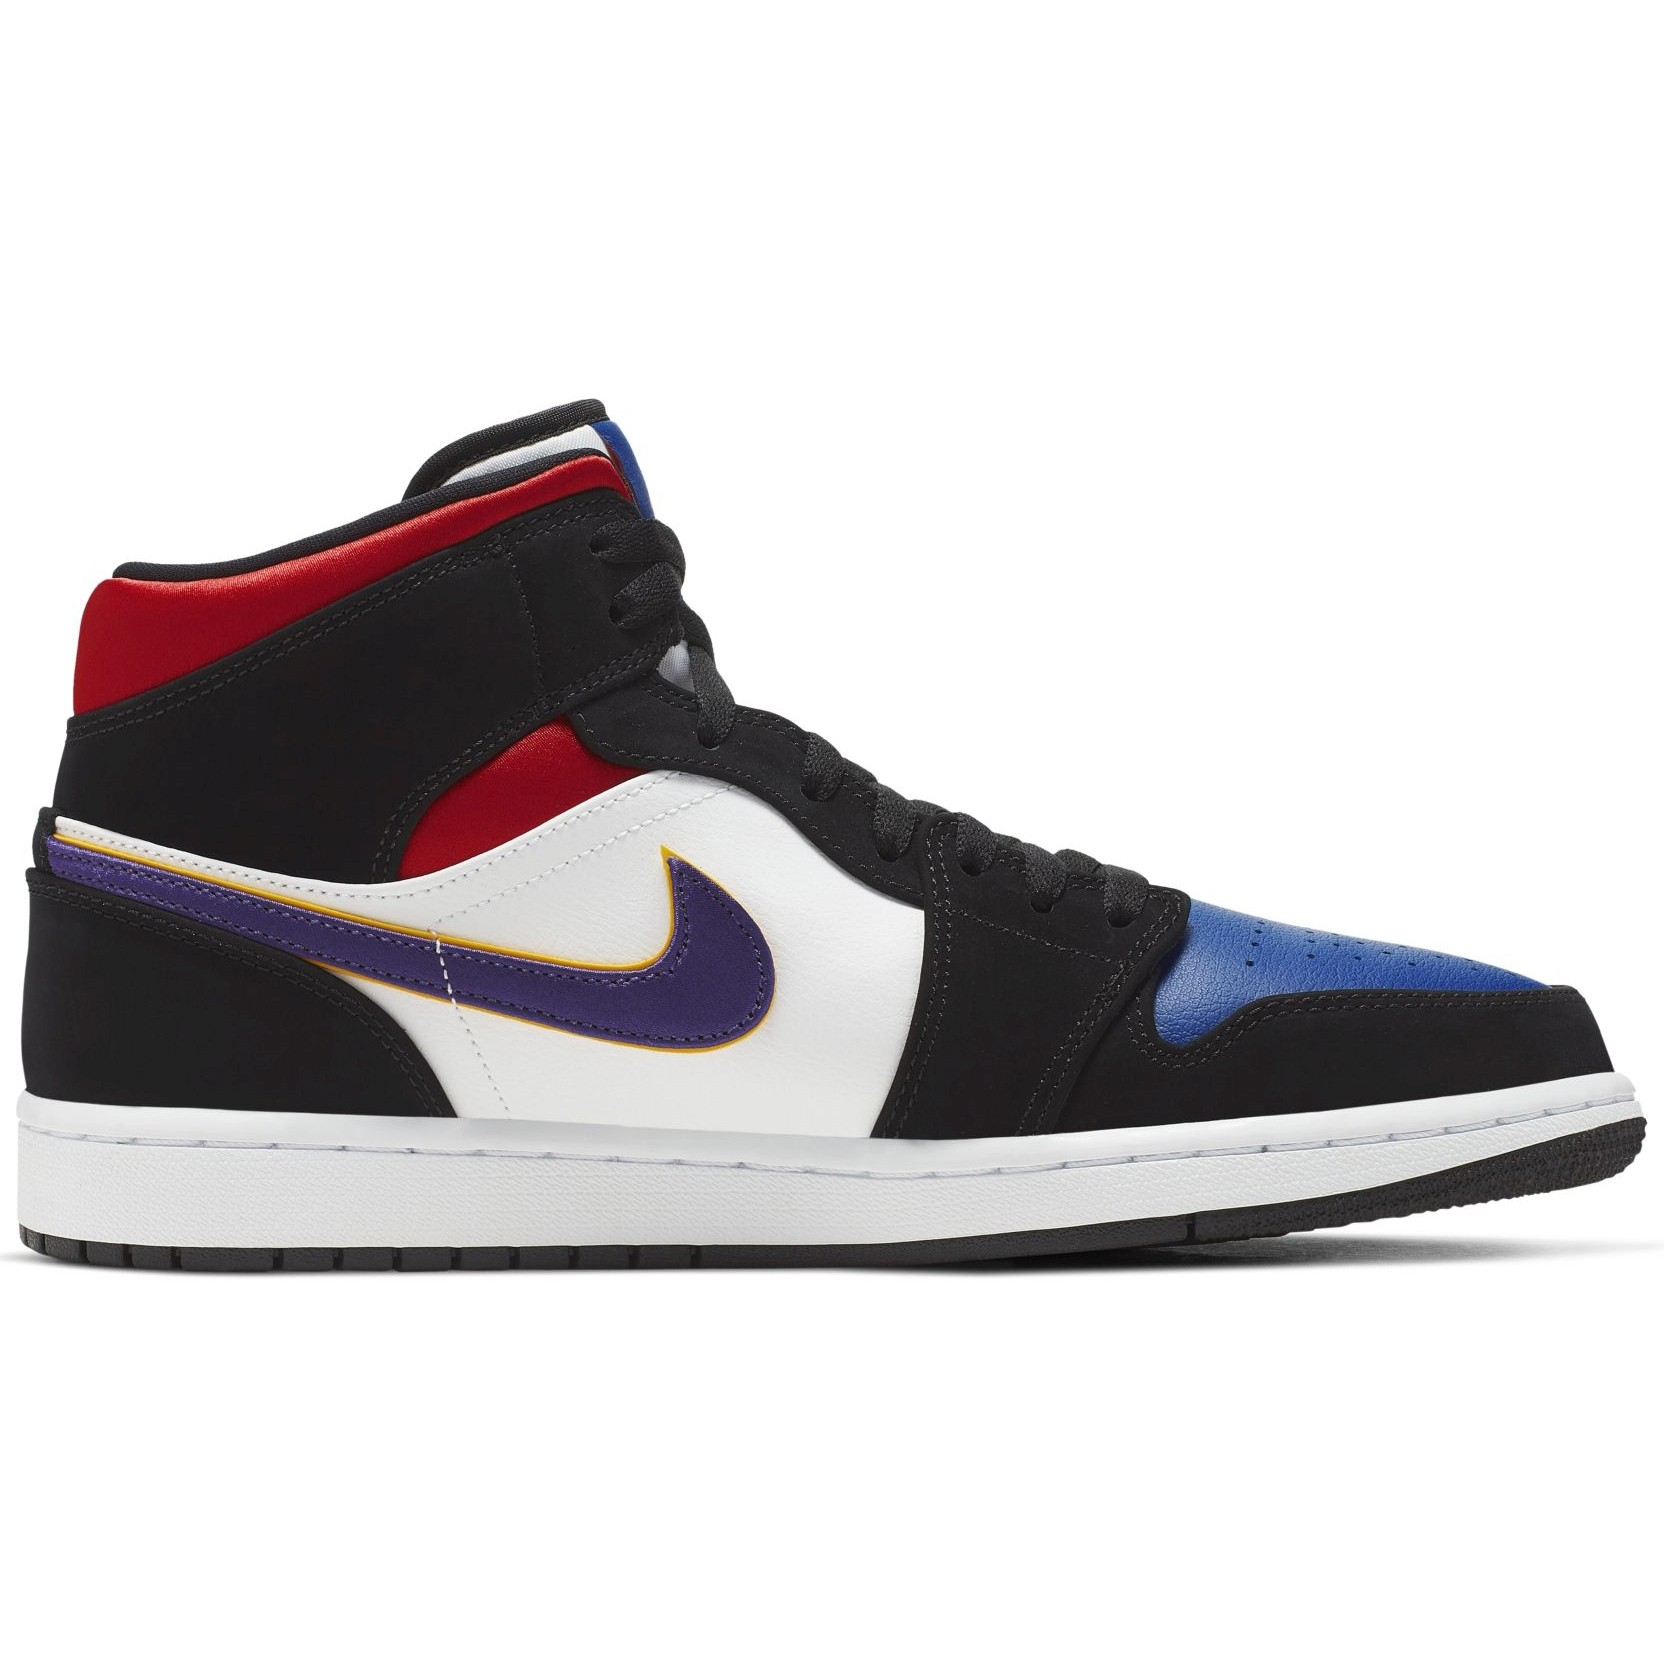 Air Jordan 1 Mid SE Top 3 Lakers - Vabaajajalatsid